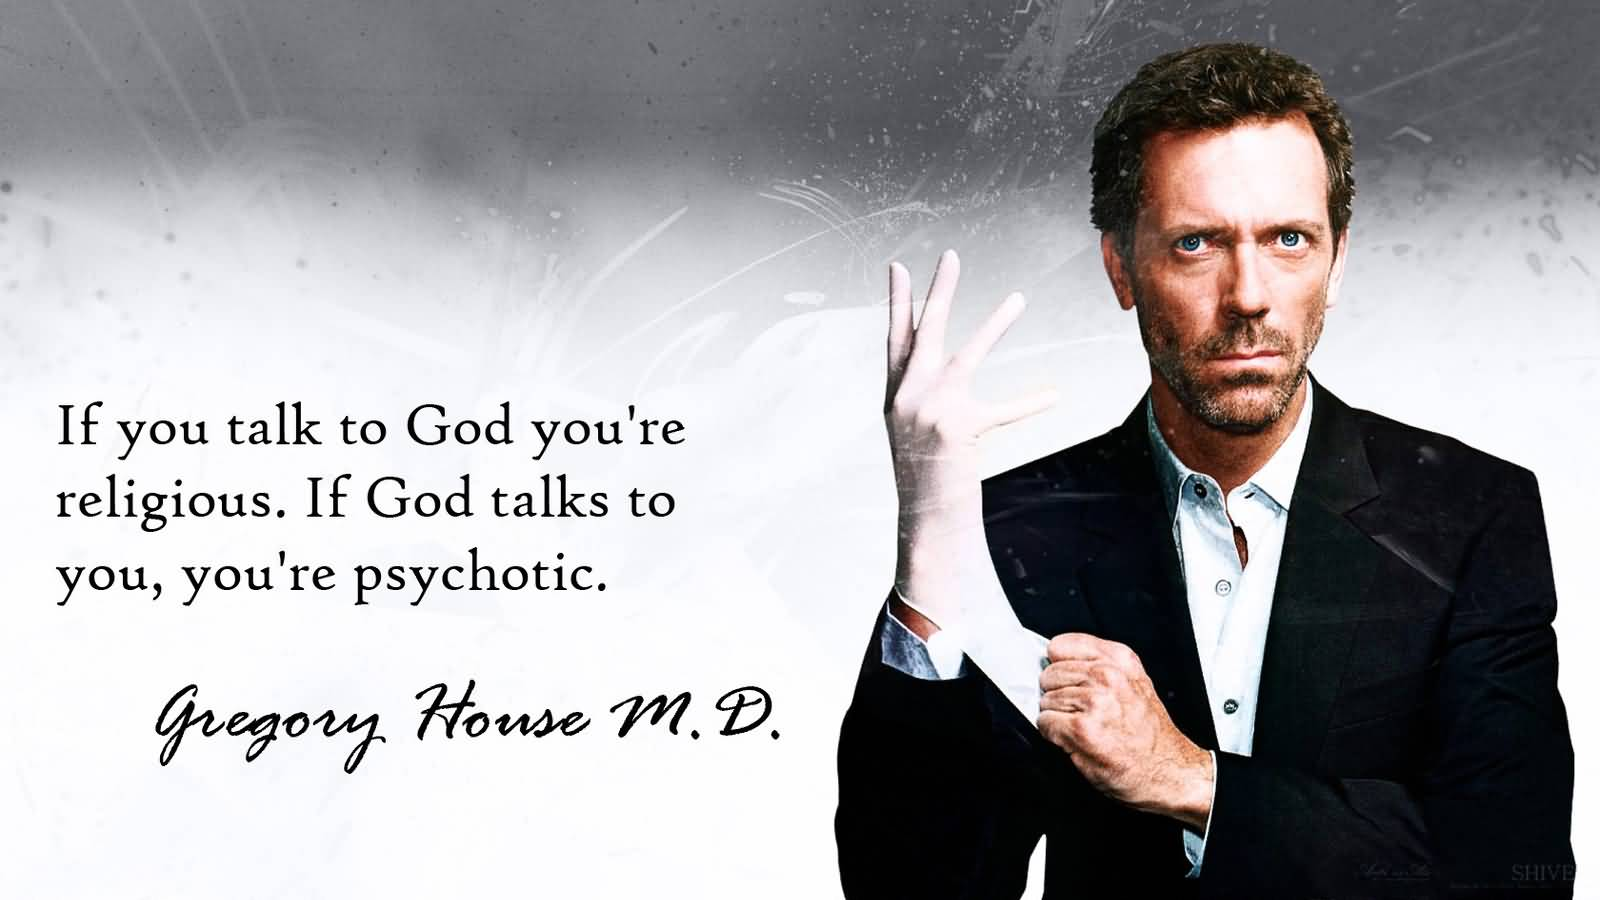 You talk to God, you're religious. God talks to you, you're psychotic. Gregory House M. D.